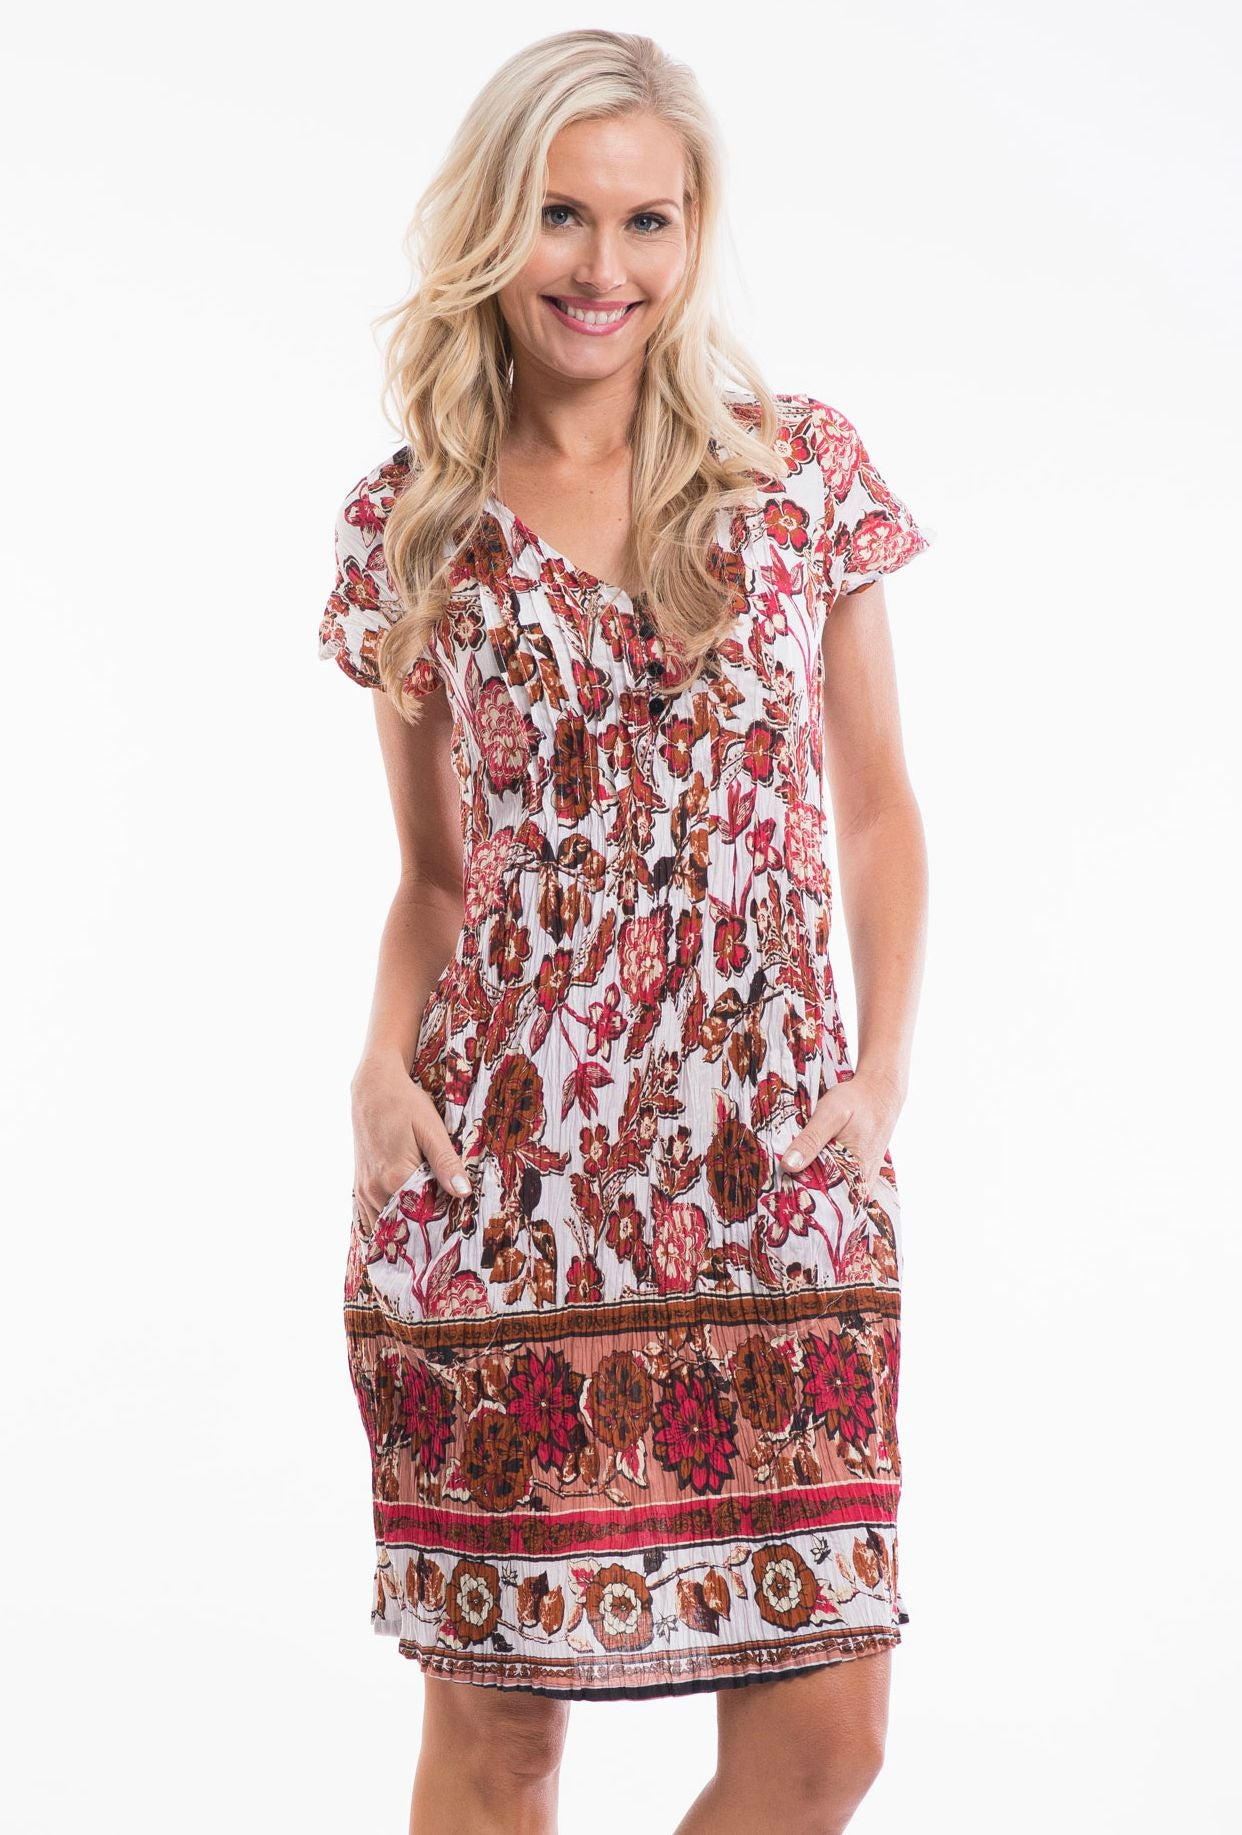 White Red Floral Tunic Dress - at I Love Tunics @ www.ilovetunics.com = Number One! Tunics Destination